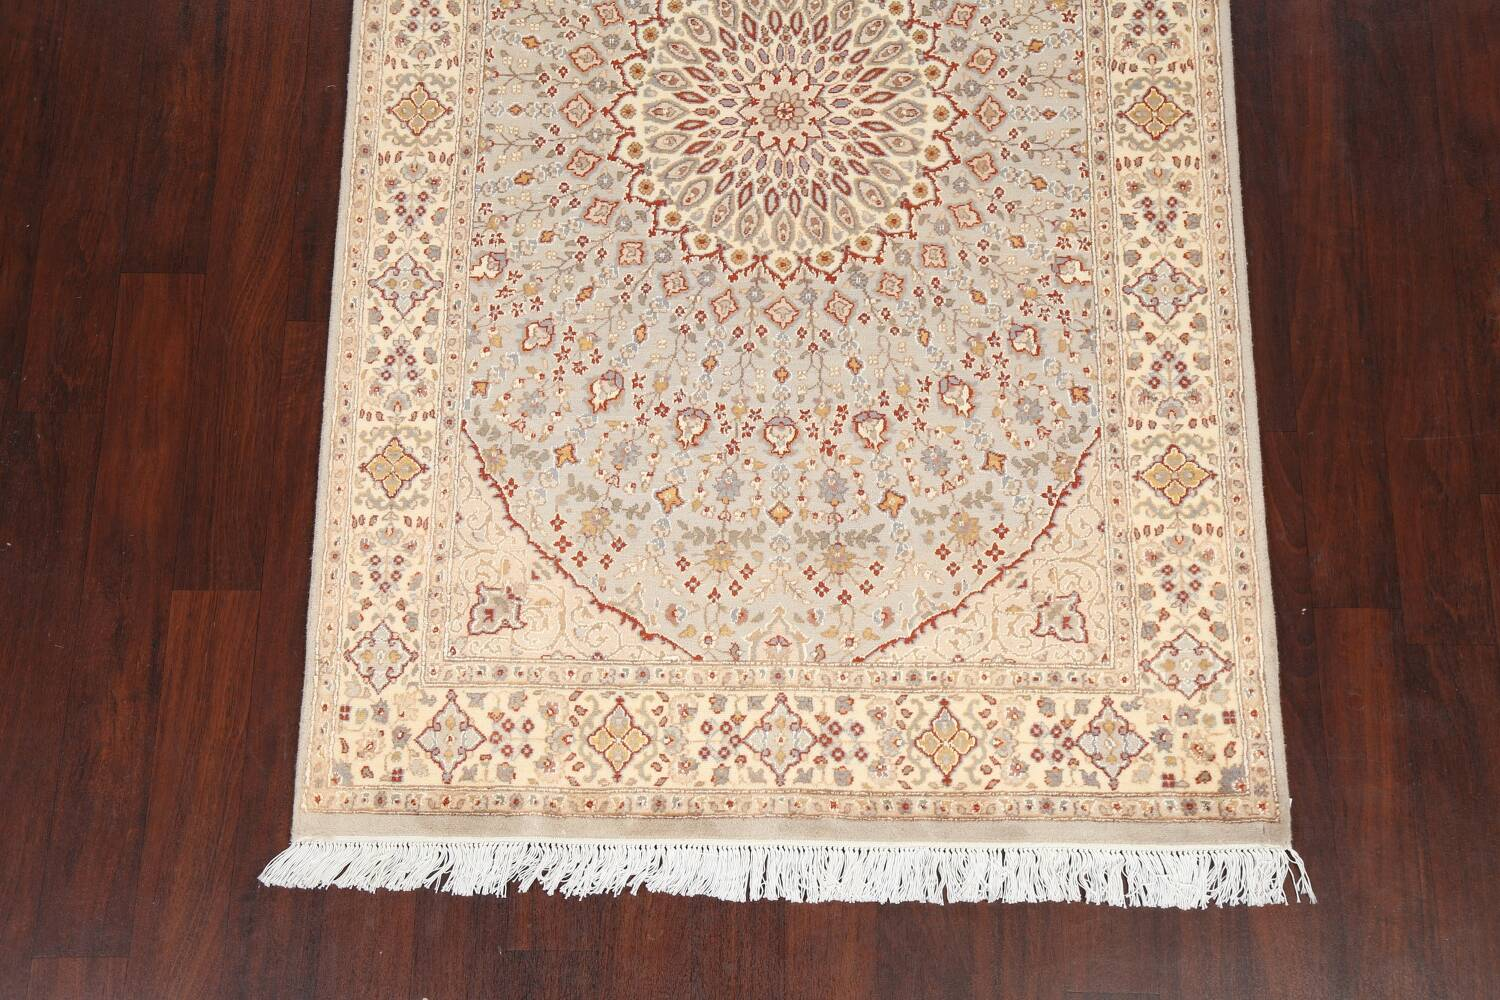 Vegetable Dye Geometric Tabriz Oriental Area Rug 5x7 image 5